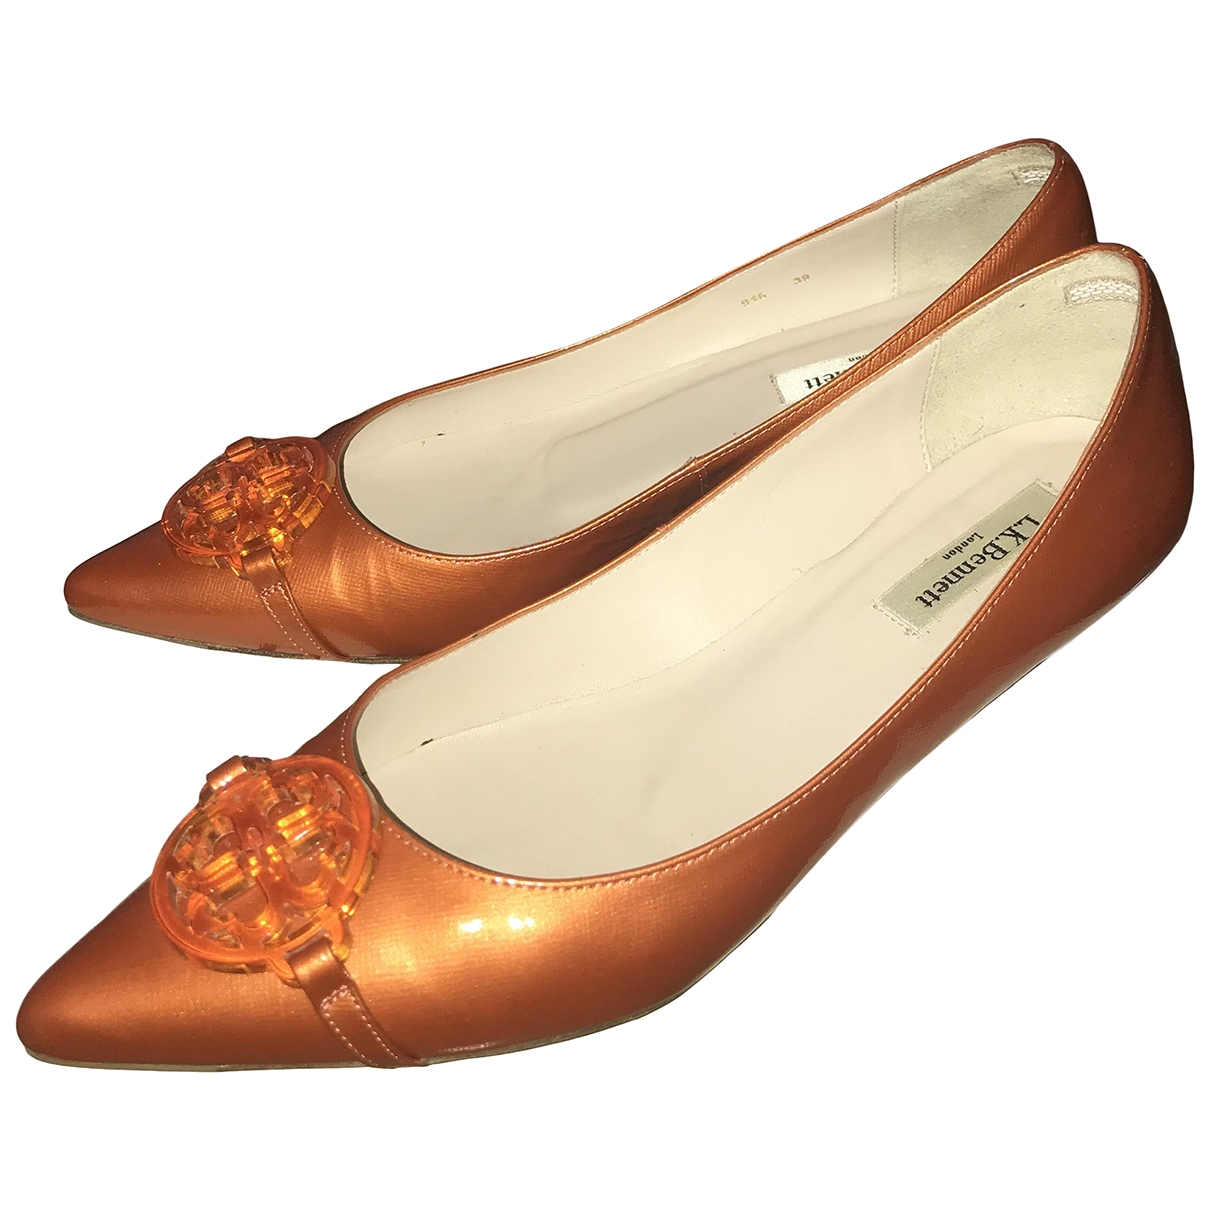 Lk Bennett \N Orange Leather Heels for Women 39 EU